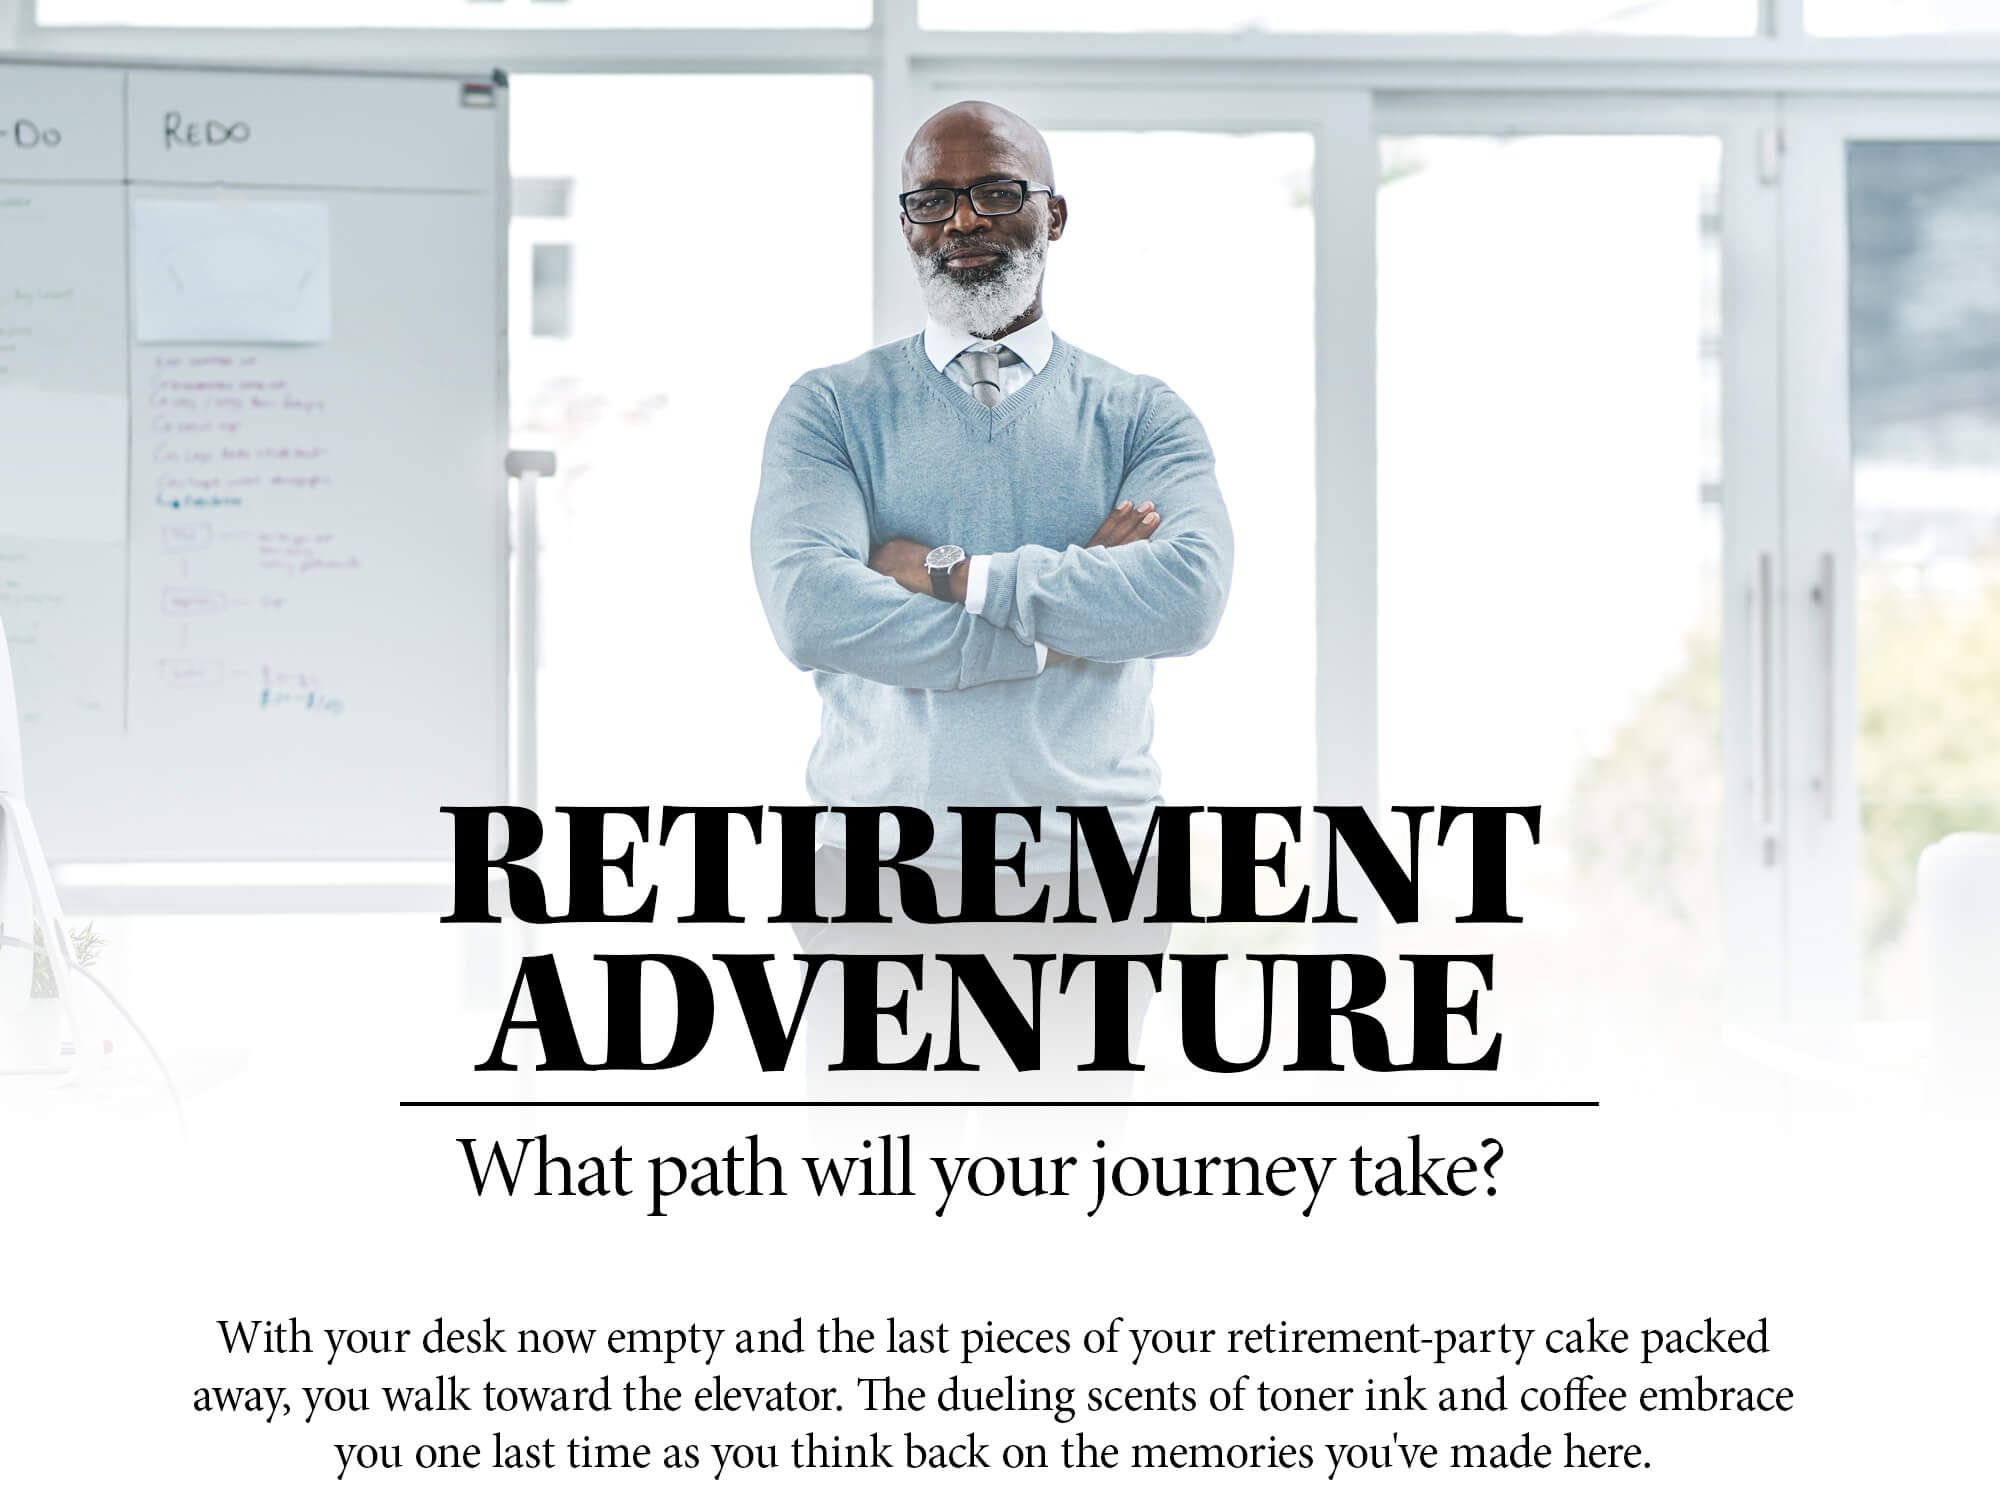 Choose Your Own Retirement Adventure. Which path will your journey take? With your desk now empty and the last pieces of your retirement-party cake packed away, you walk toward the elevator. The dueling scents of toner ink and coffee embrace you one last time as you think back on the memories you've made here.